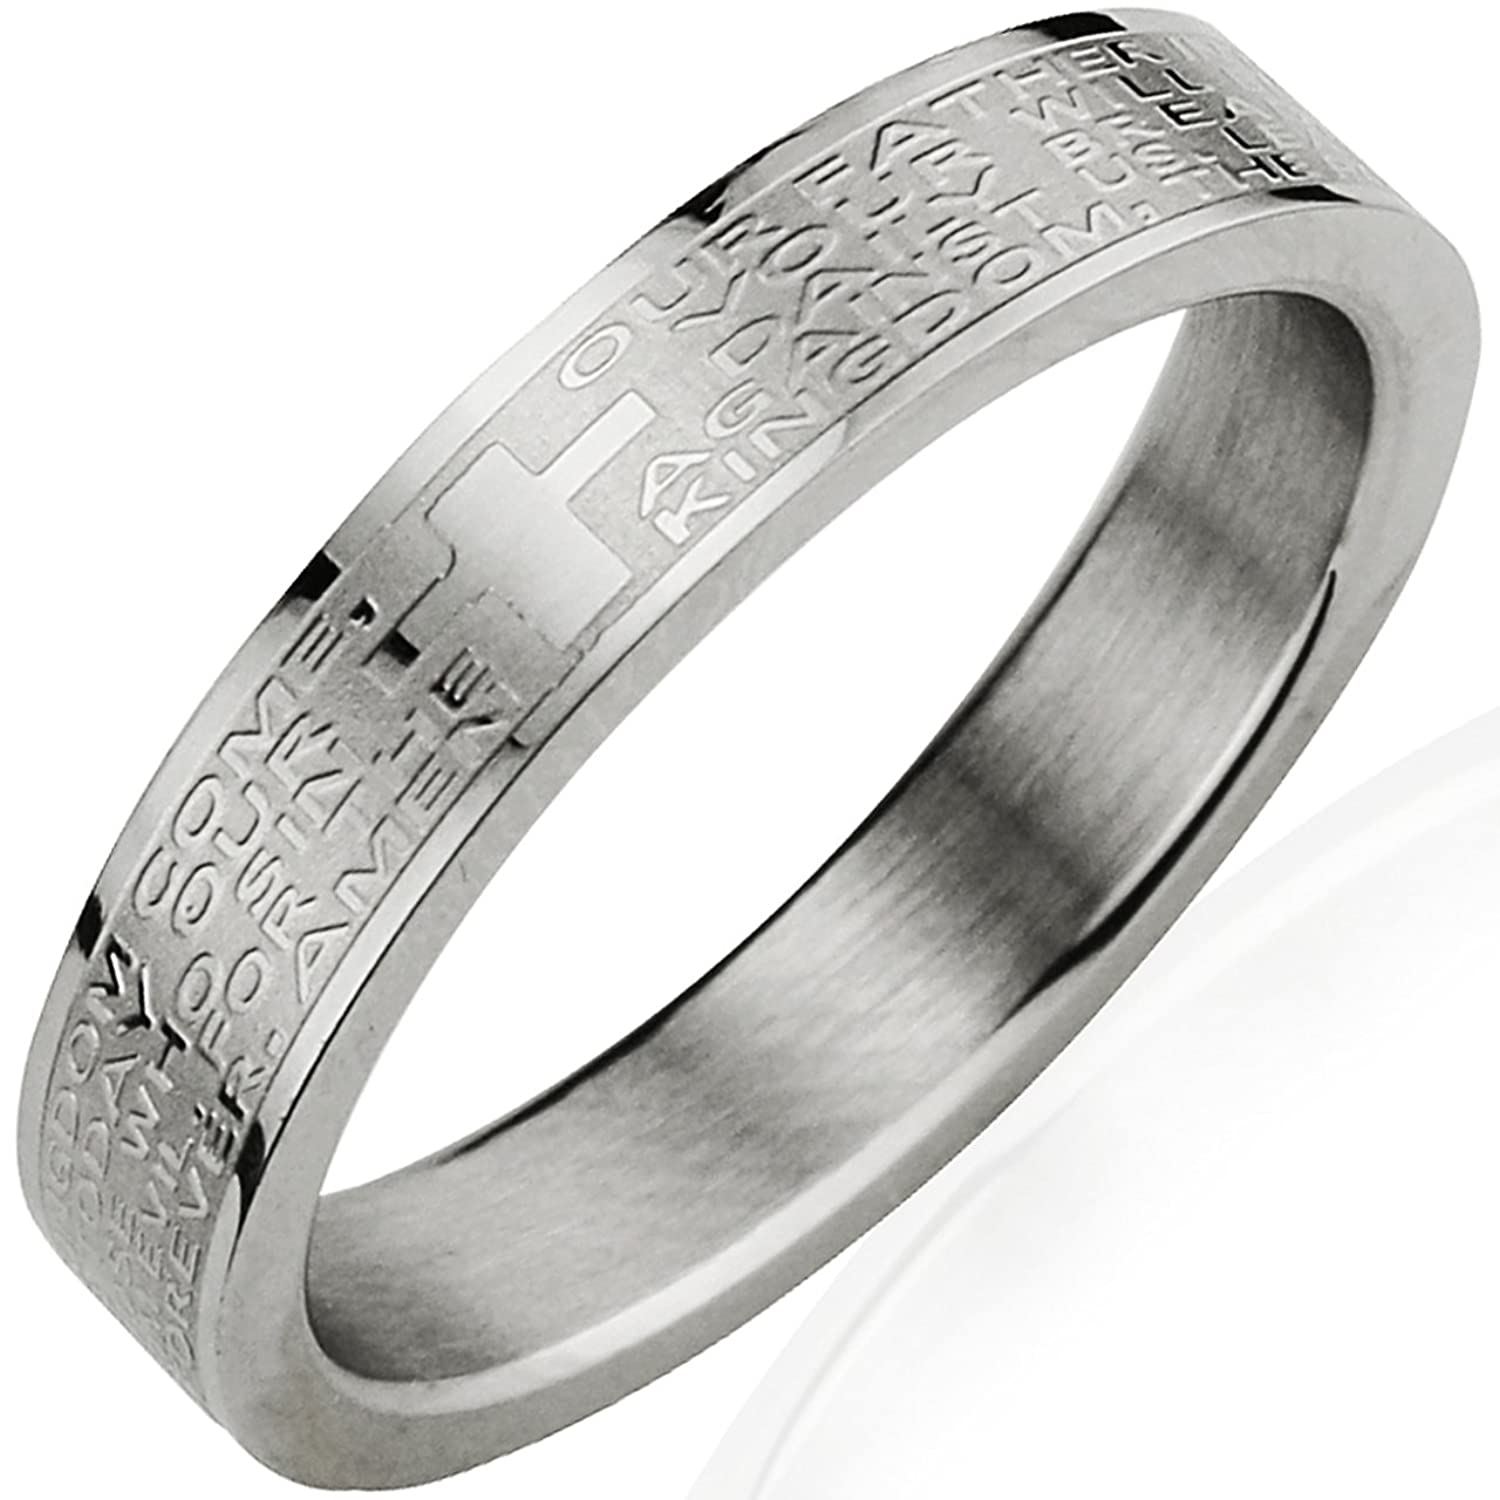 outlander rings awesome wedding ring ideas right on hand beautiful nice